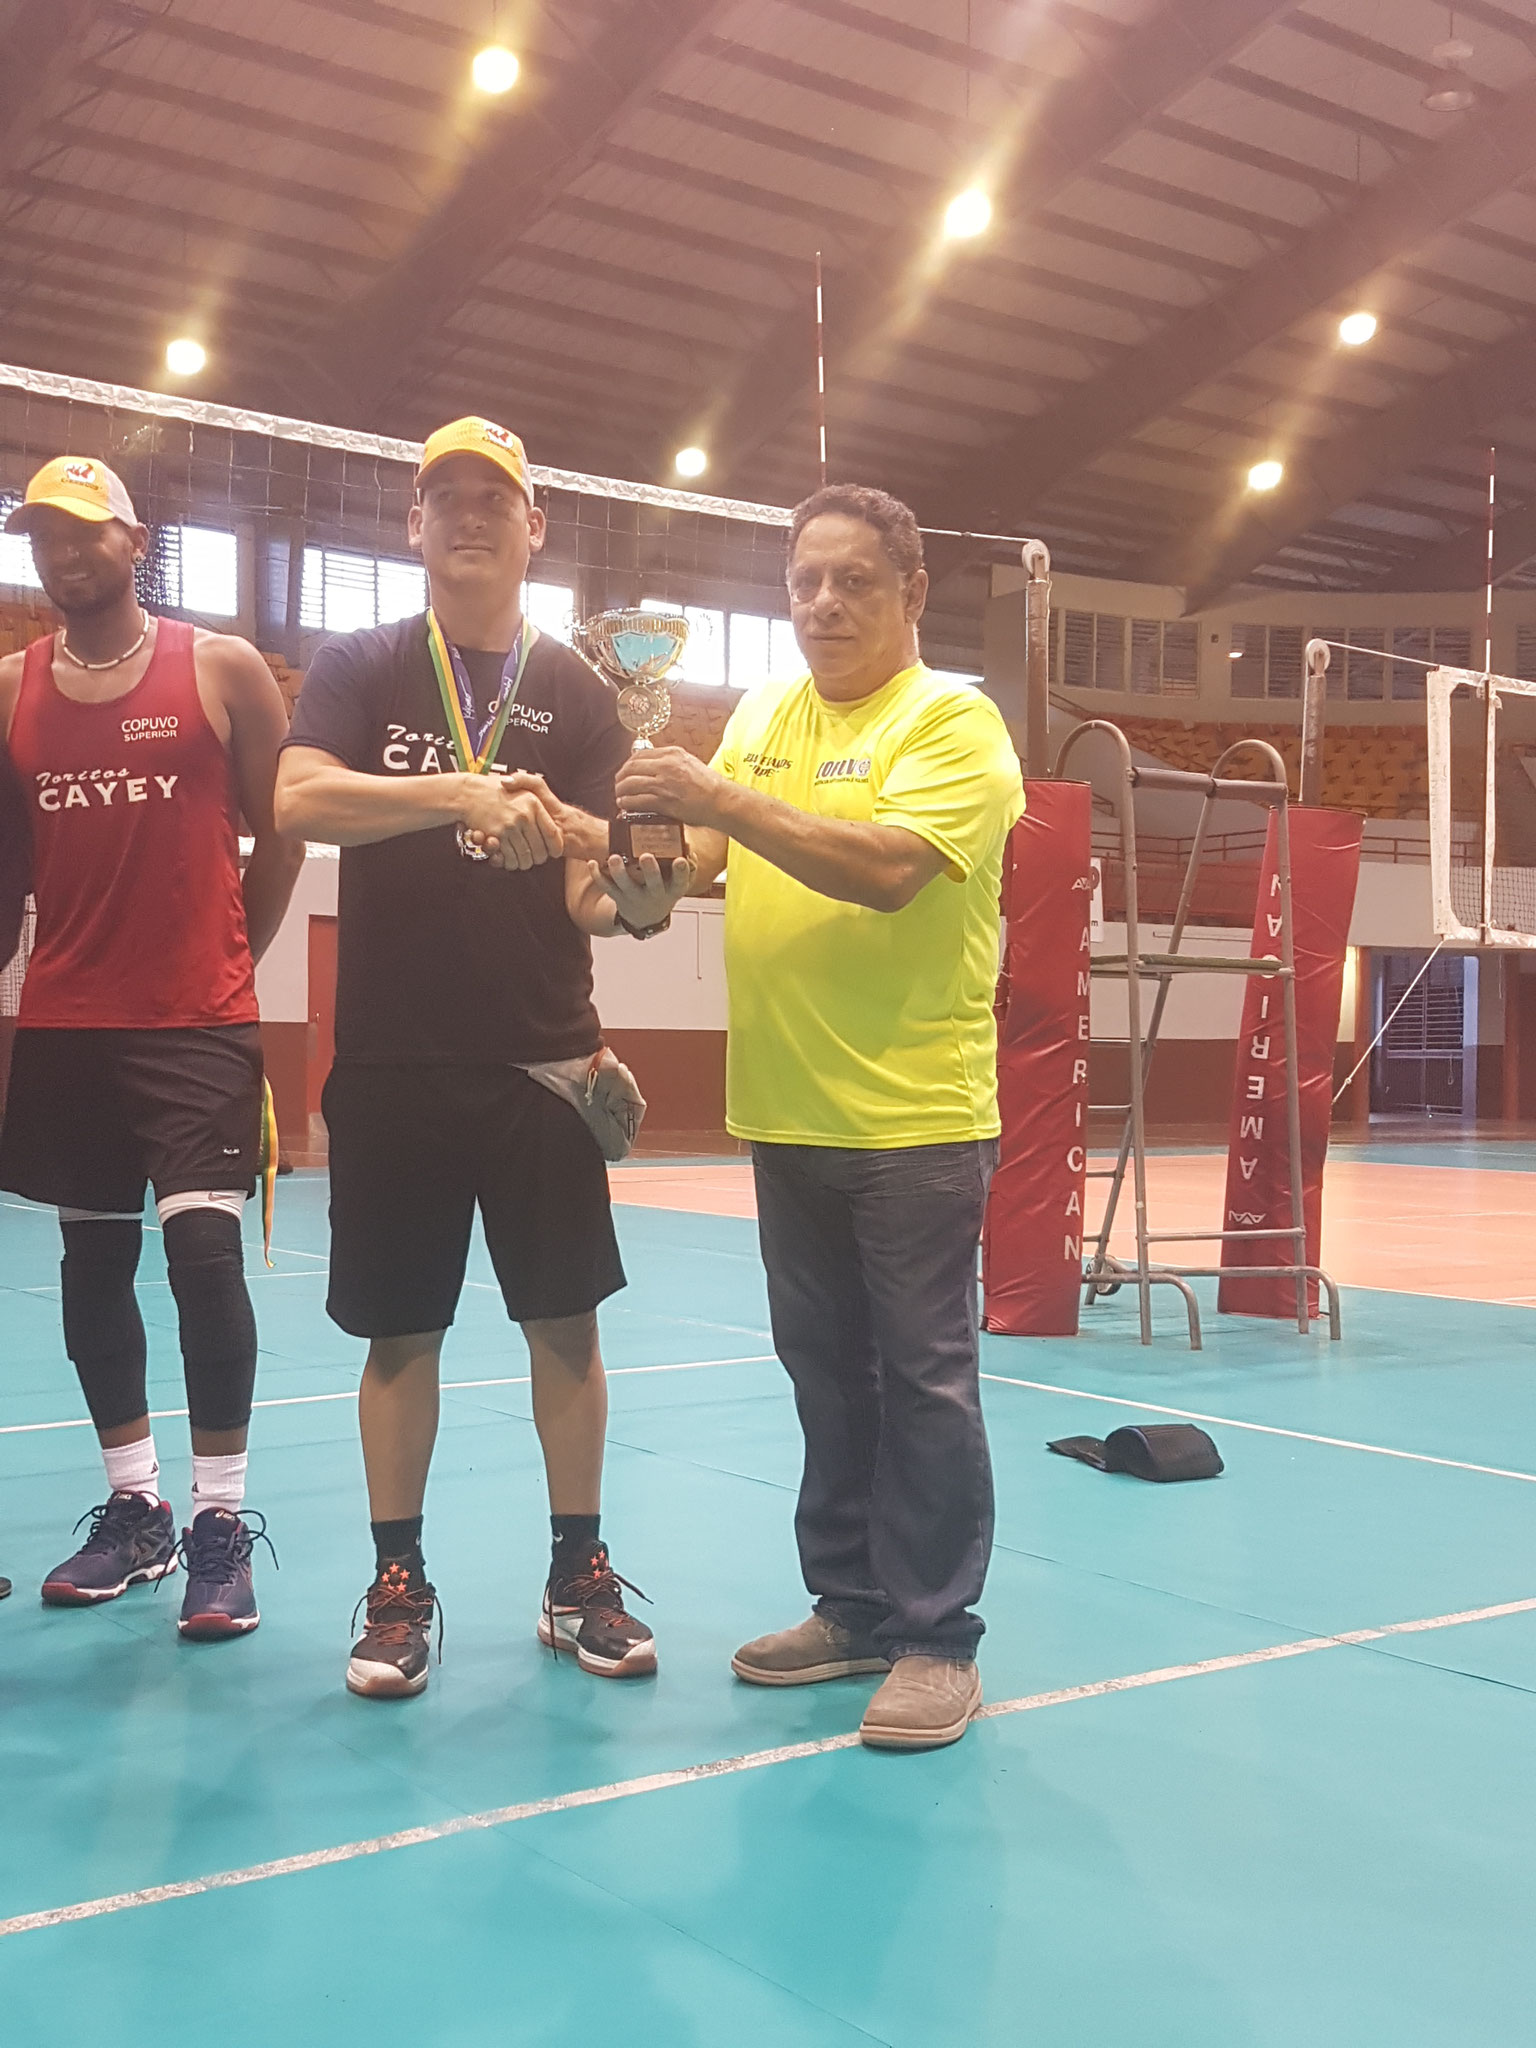 William Ramos apoderado y coach de Cayey subcampeones 2017